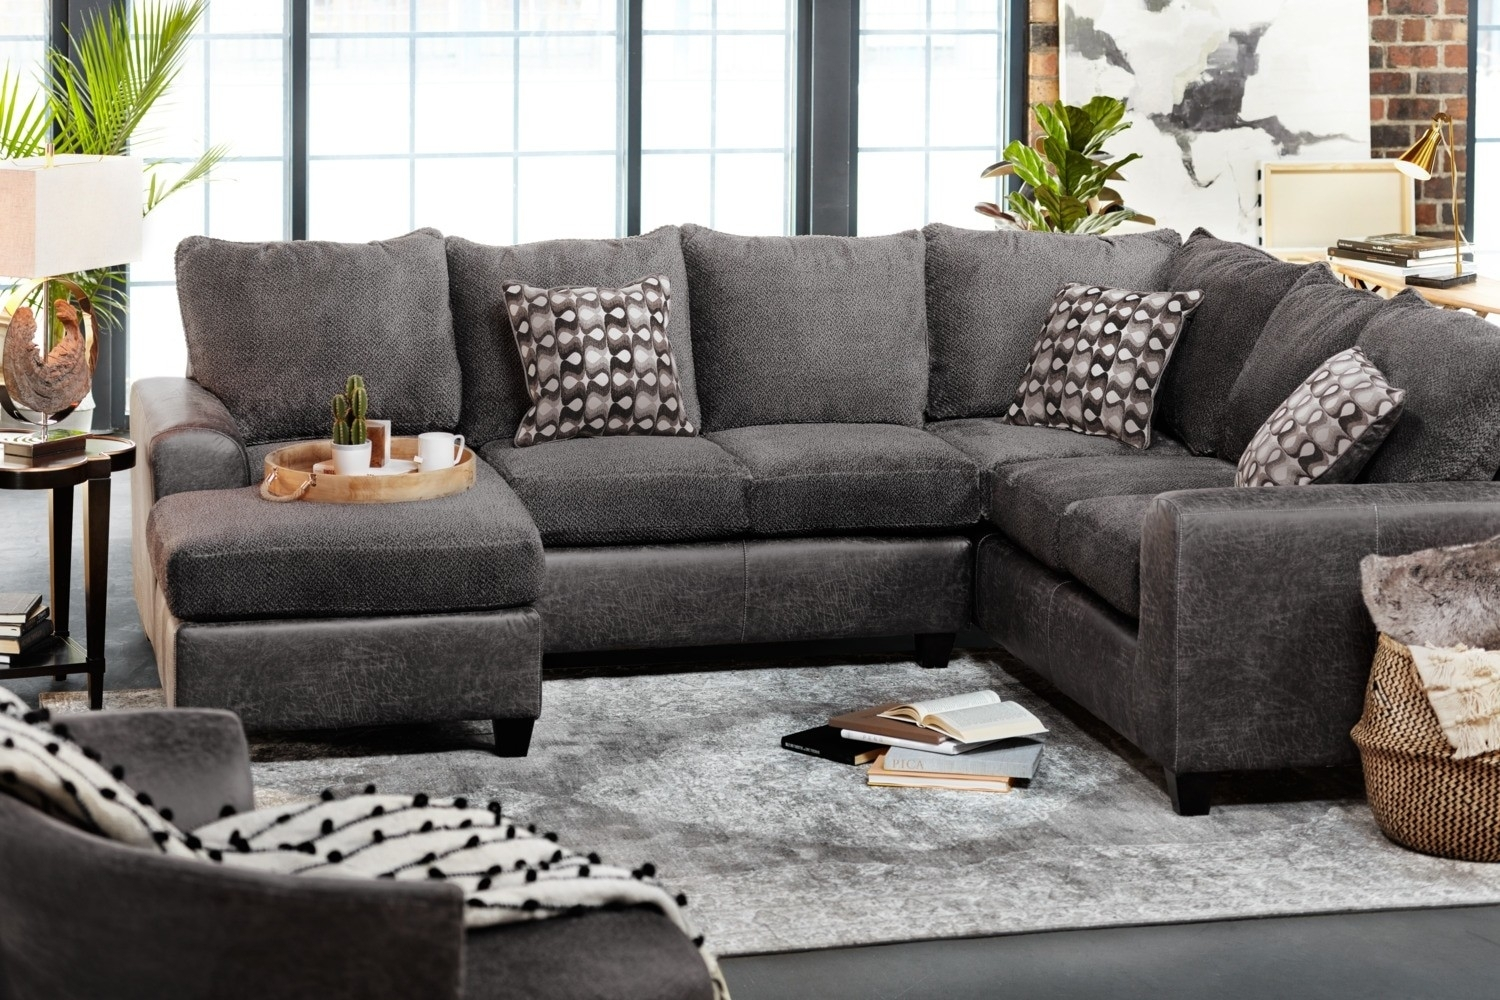 3 Piece Sectional Malbry Point W Laf Chaise Living Spaces 223533 0 Inside Malbry Point 3 Piece Sectionals With Laf Chaise (Photo 2 of 30)